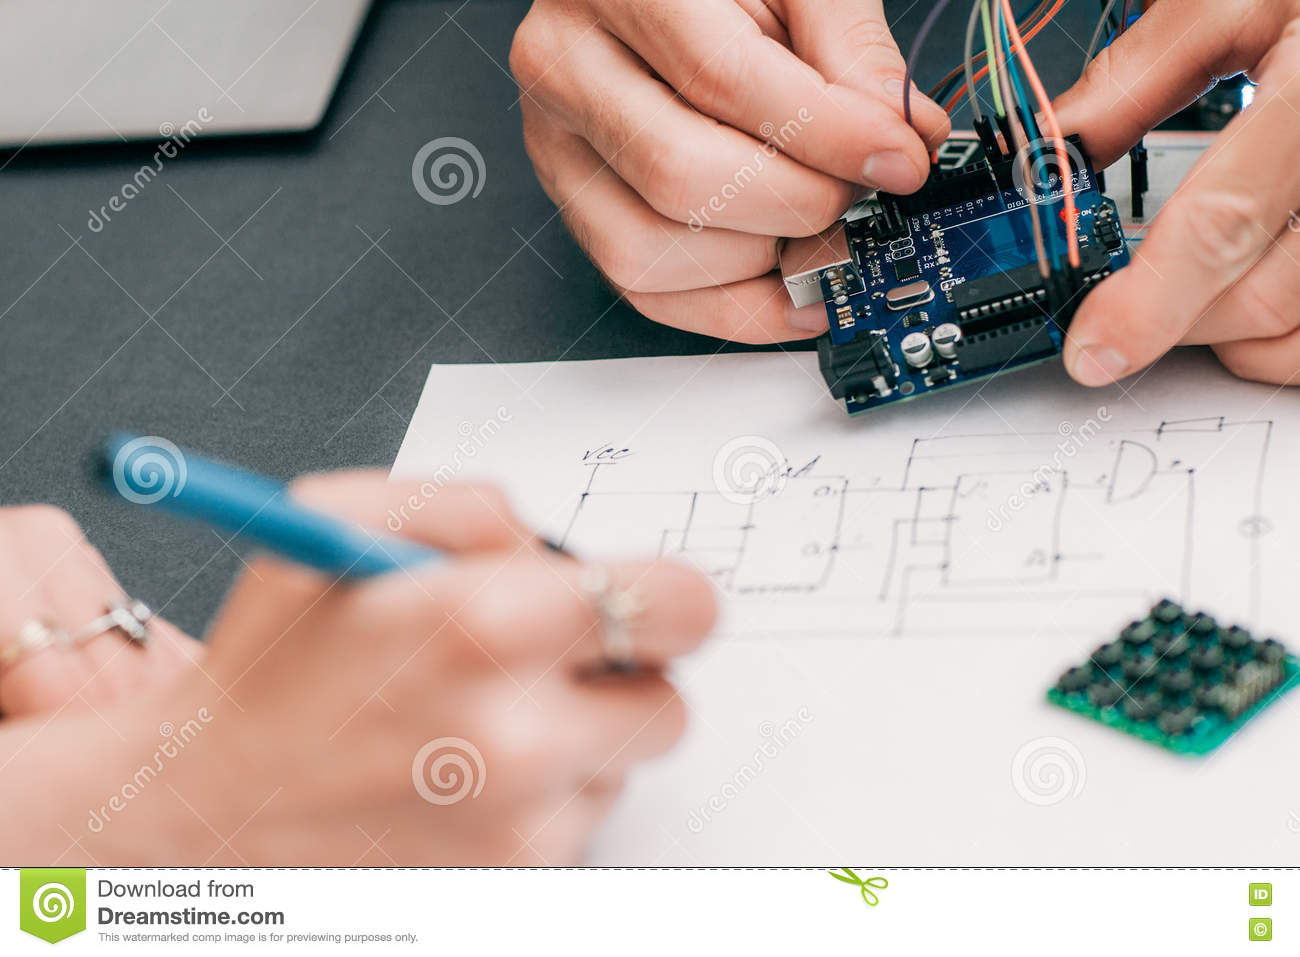 hight resolution of woman recapping electronics creation process engineer assistant drawing wiring diagram of electronic construction modern technologies innovation